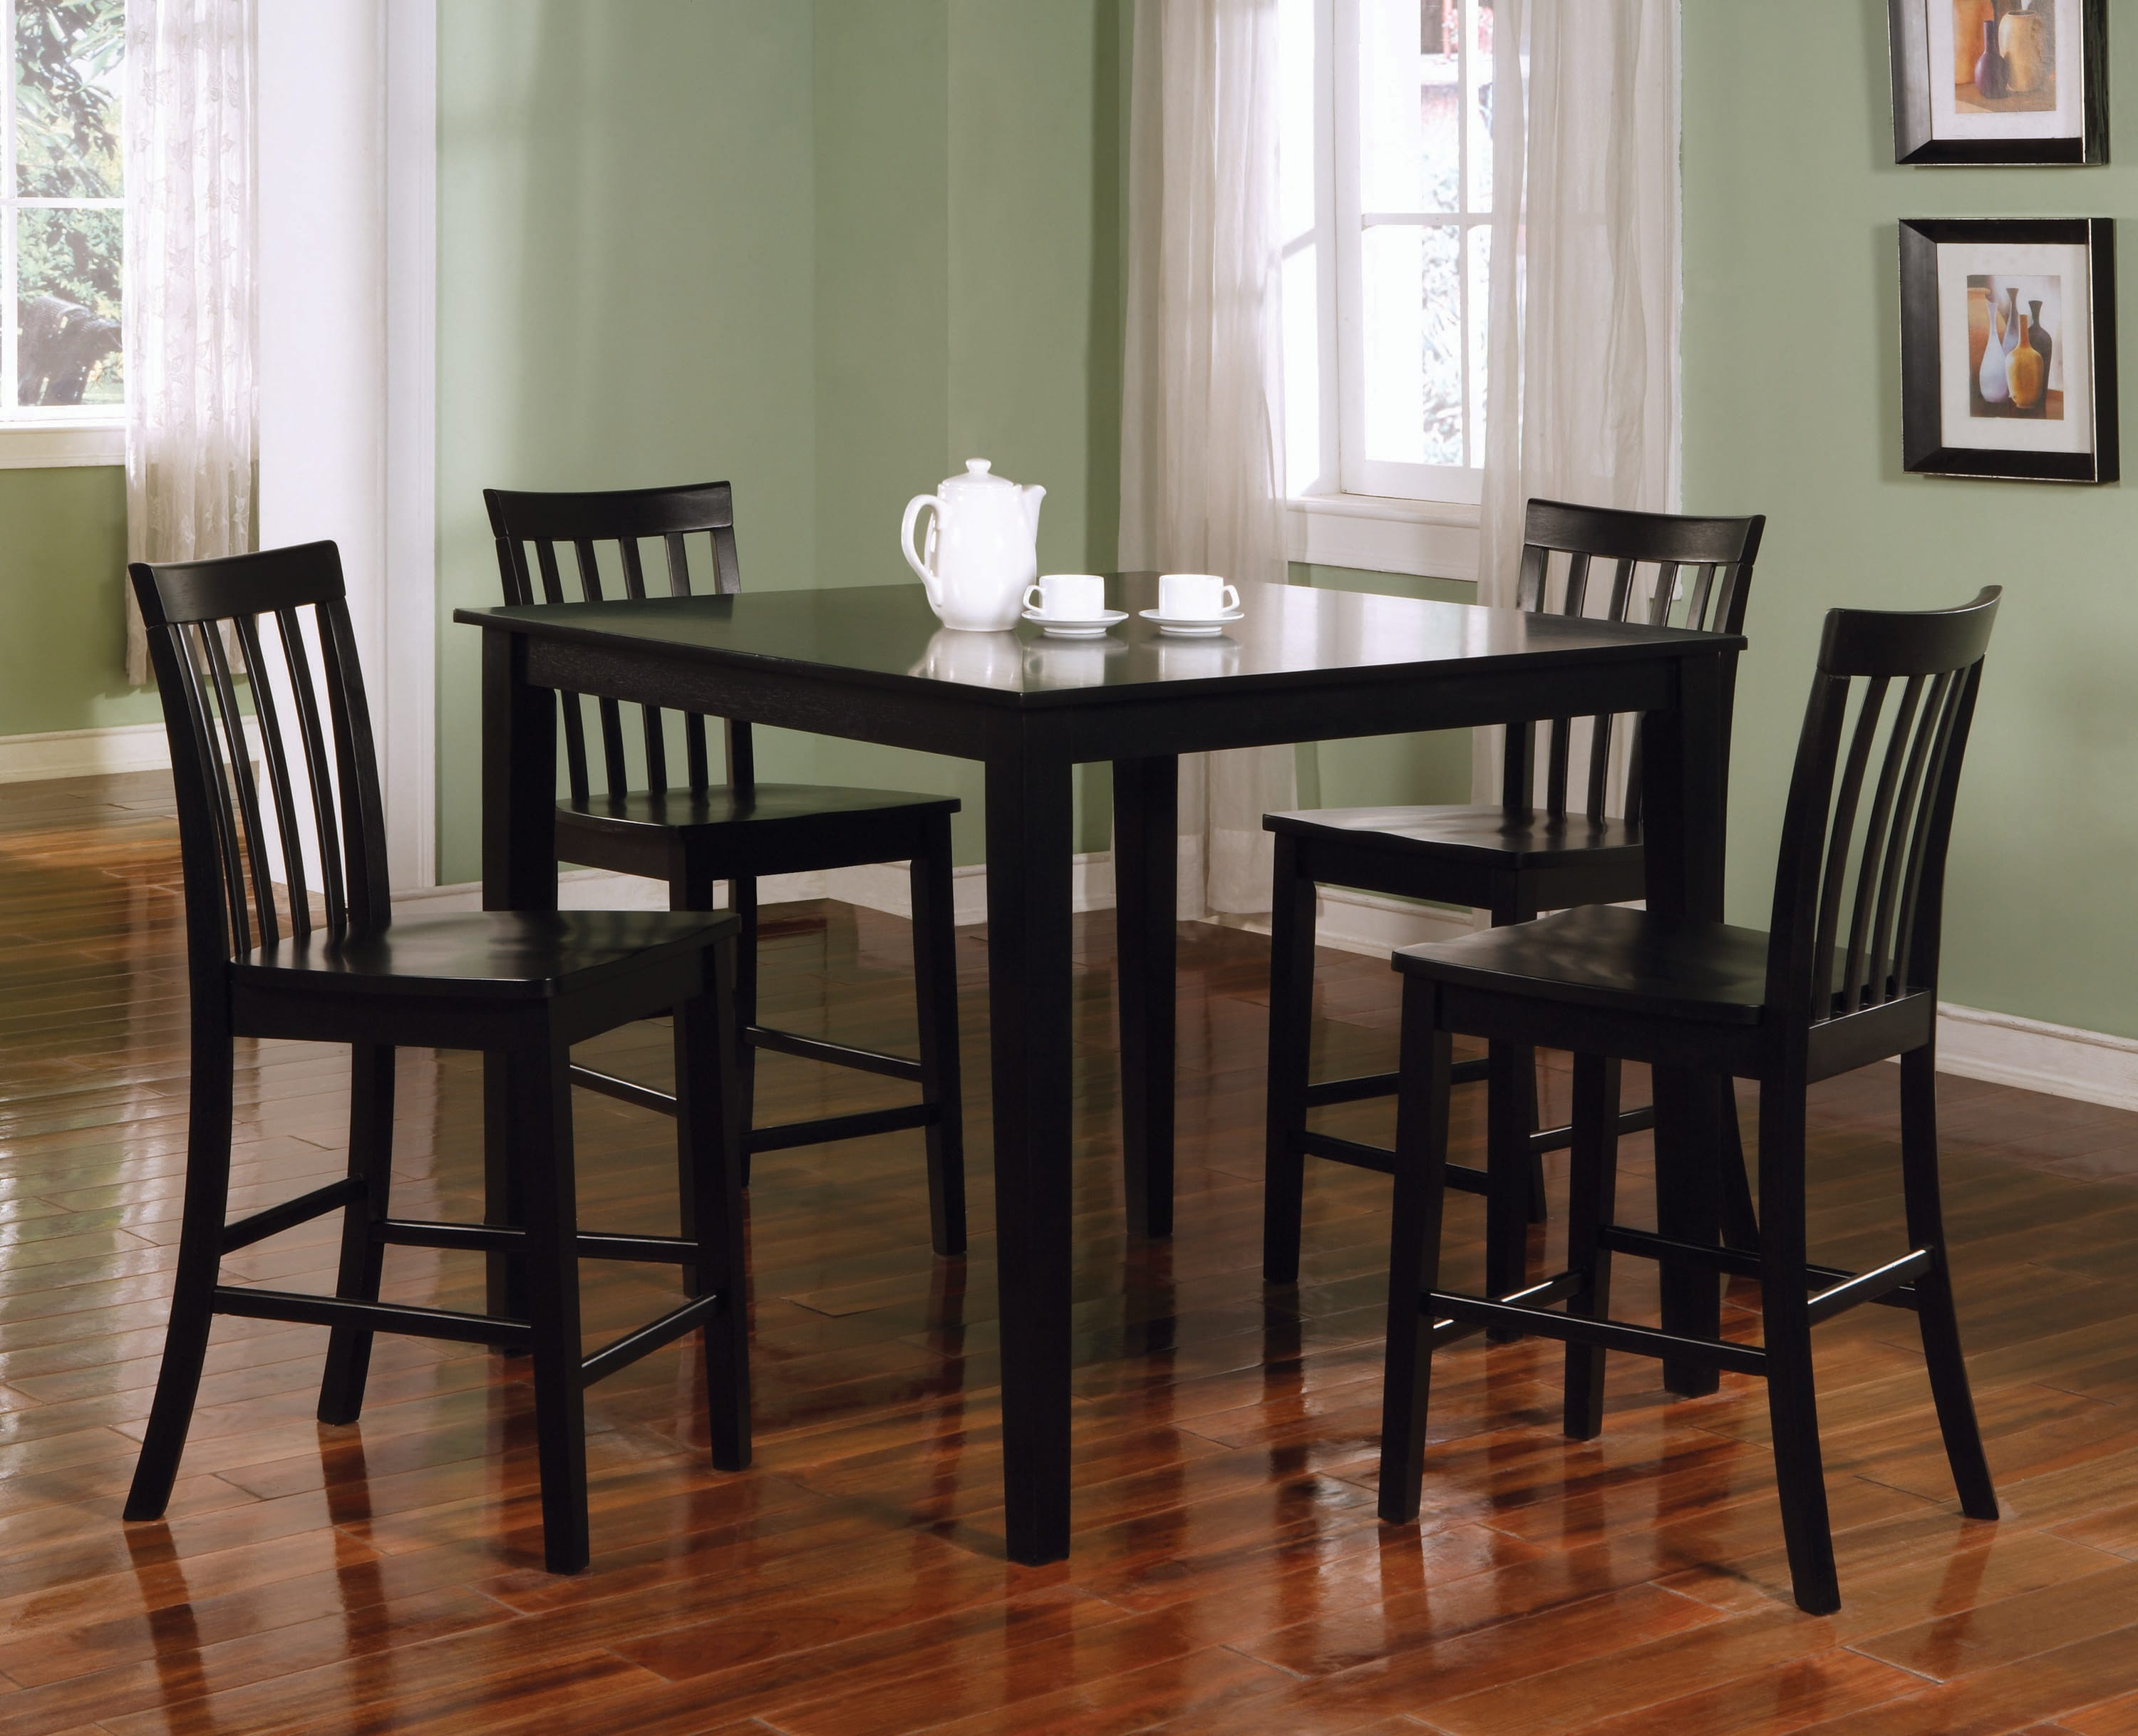 5 Piece Black Counter Height Dining Set By Coaster Fine Furniture